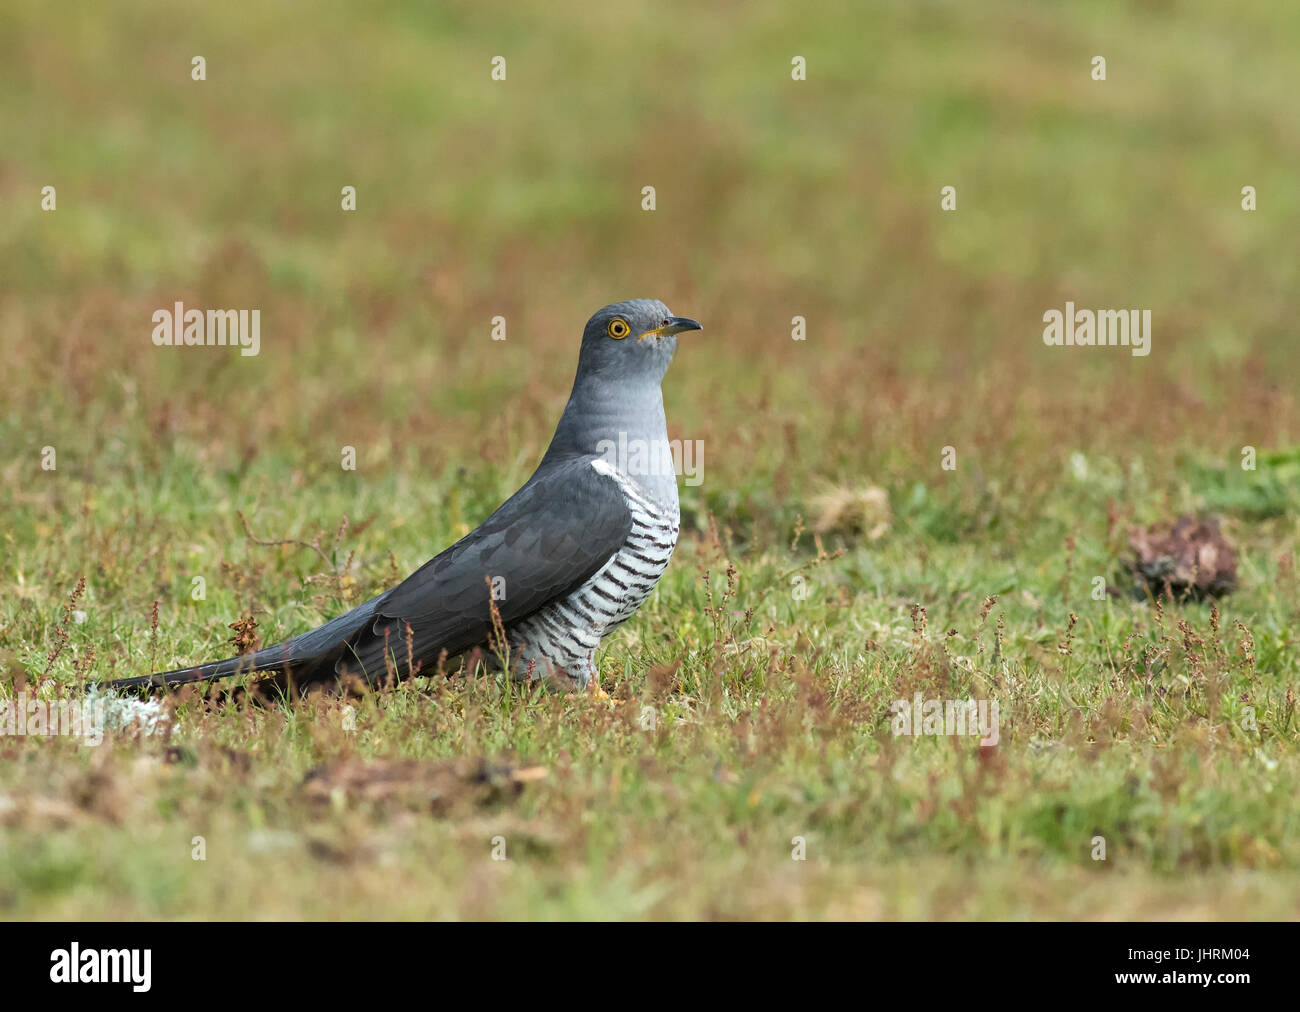 Adult Male Cuckoo perched on ground - Stock Image